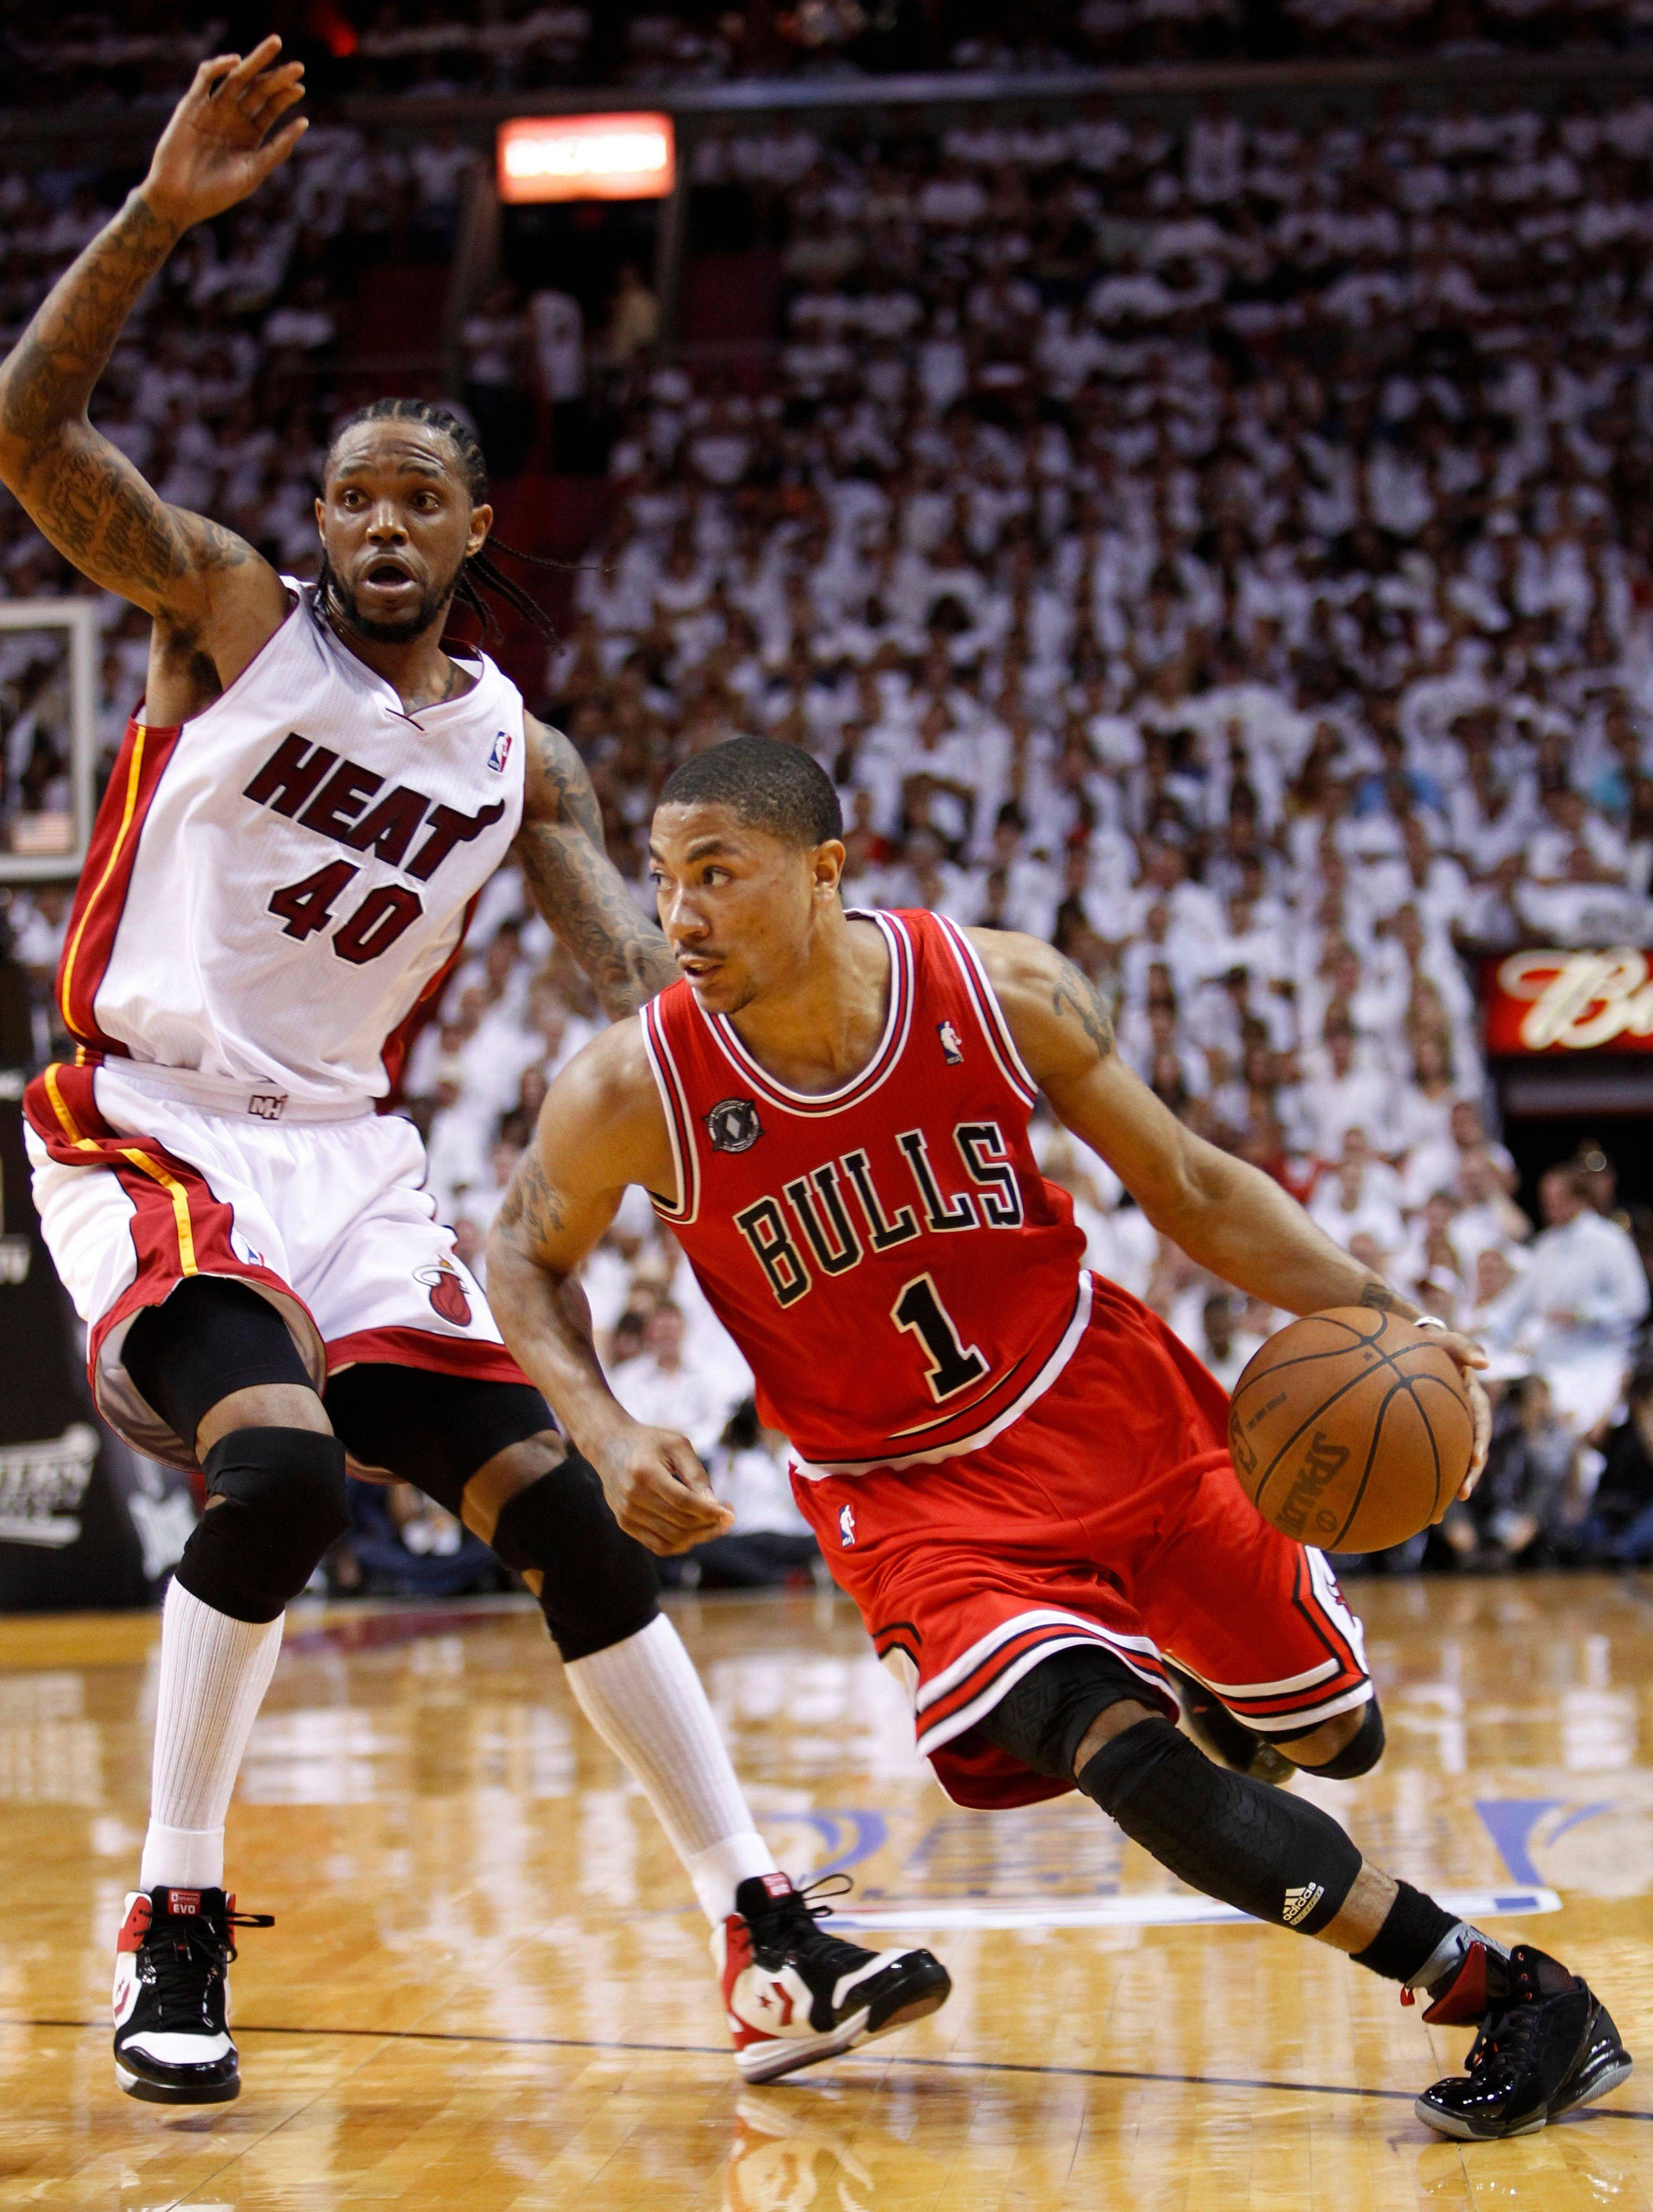 Chicago Bulls' Derrick Rose (1) drives to the basket past Miami Heat's Udonis Haslem (40) during the second half of Game 3 of the NBA Eastern Conference finals basketball series in Miami, Sunday, May 22, 2011.